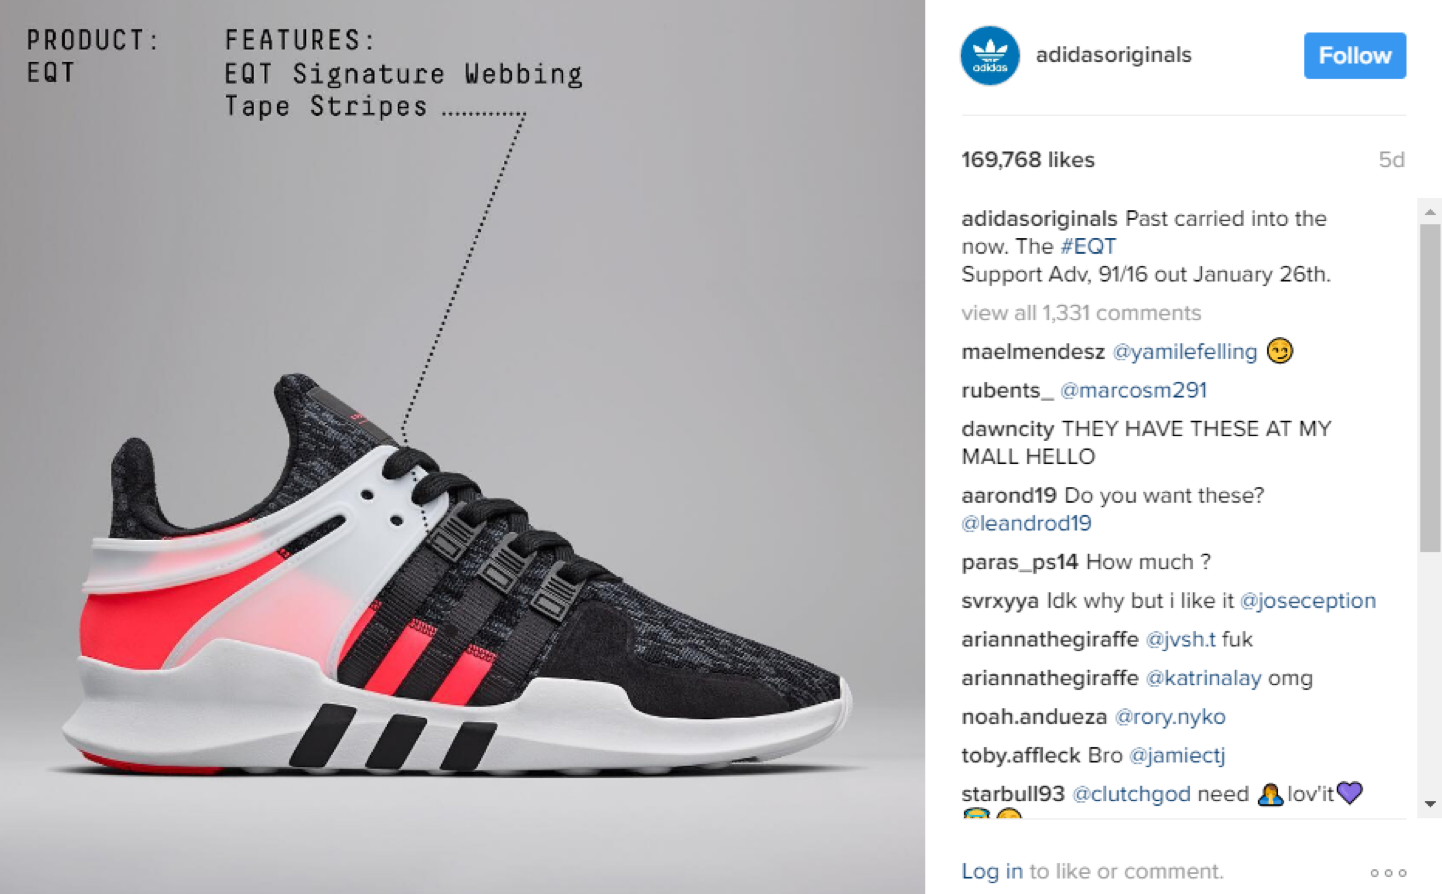 Photo of Adidas' Instagram post with simple product shot.